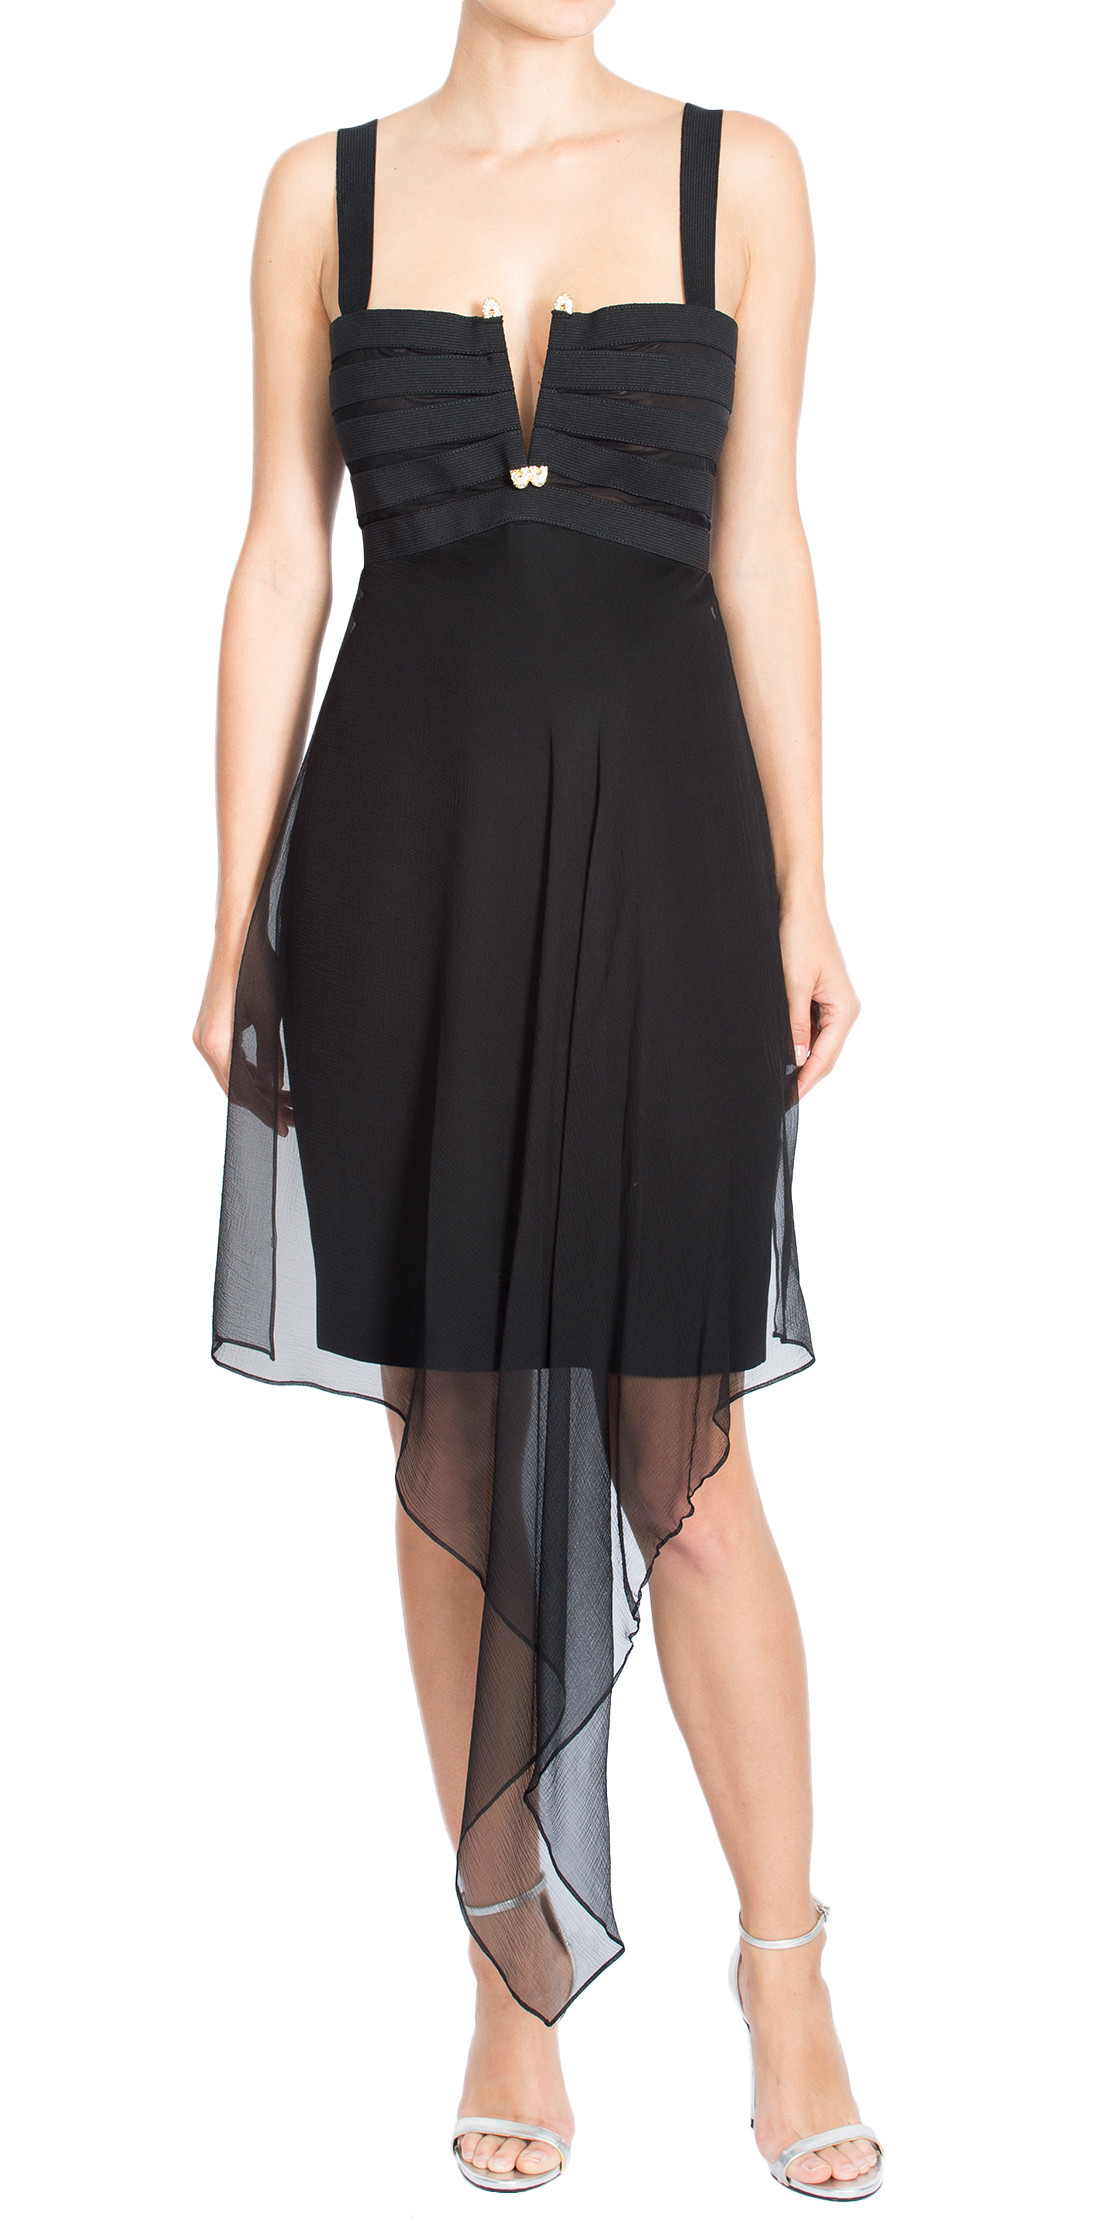 Gianfranco Ferre Bandage Silk Dress